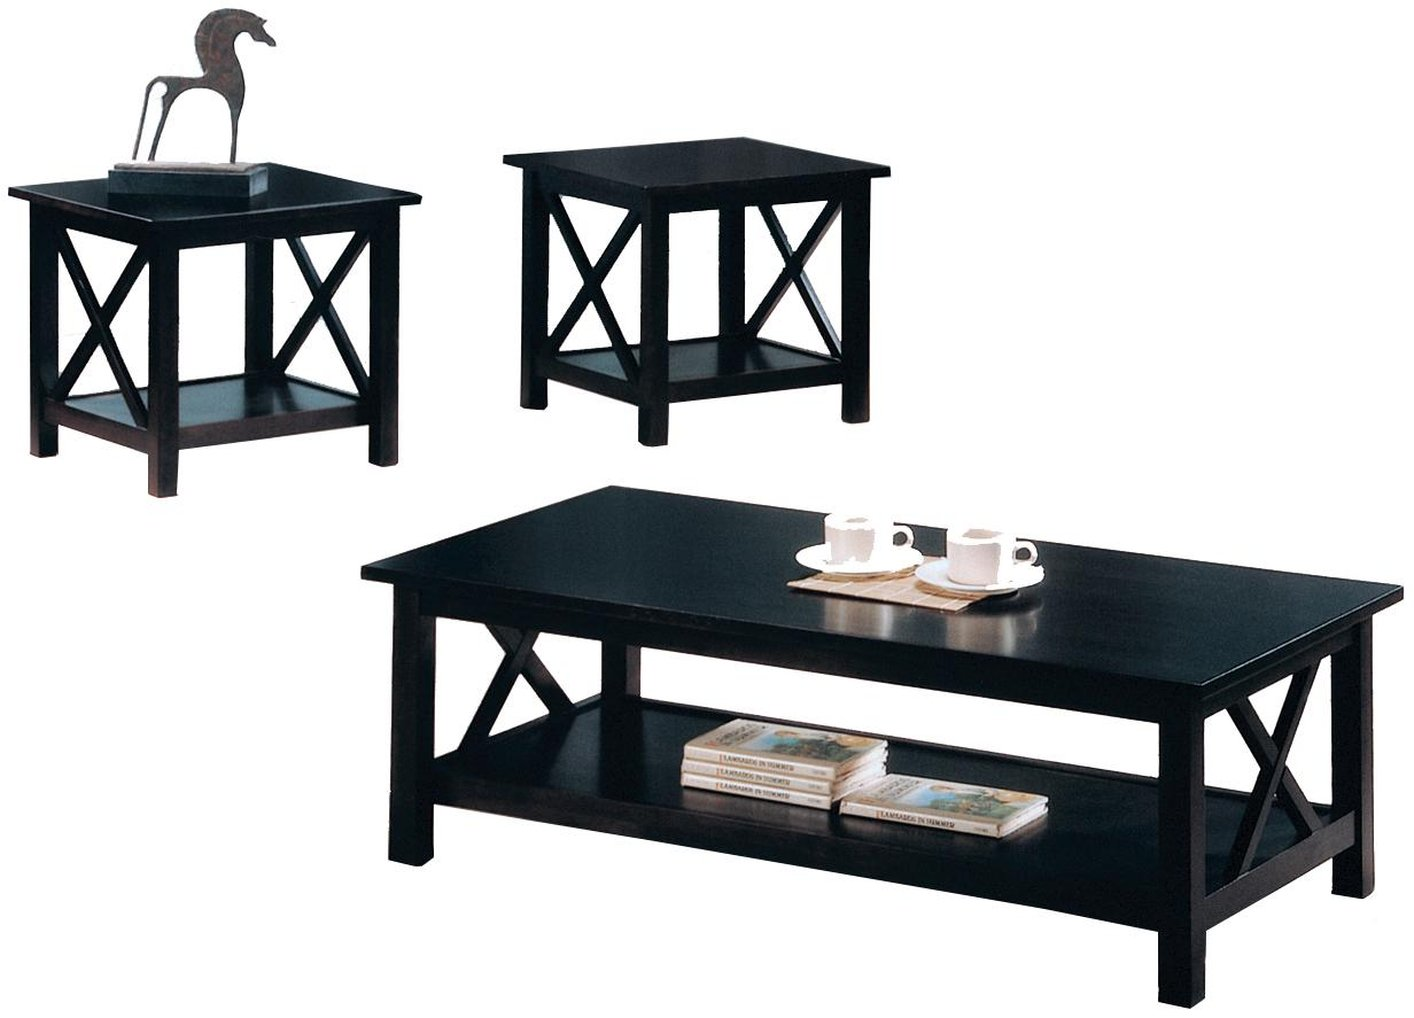 Black Wood Coffee Table Set  sc 1 st  Steal-A-Sofa Furniture Outlet : black coffee and end table set - pezcame.com